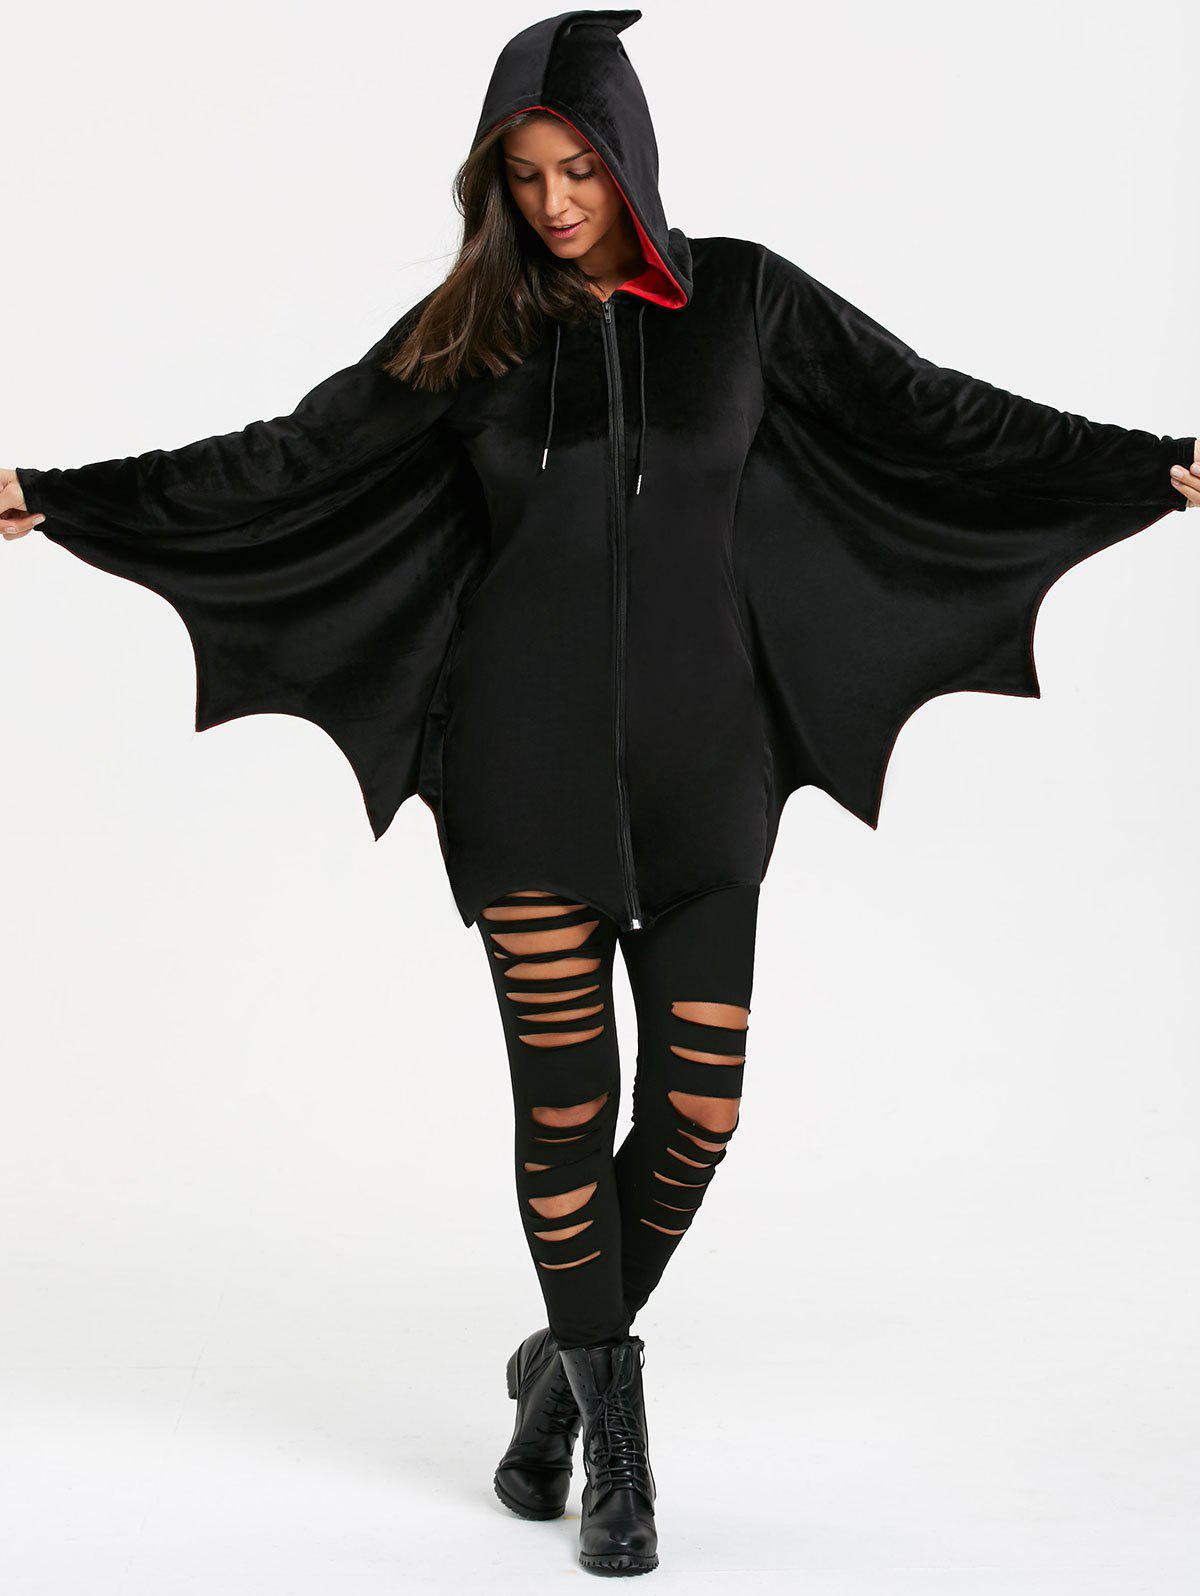 Halloween Bat Wing Wave Cut Zip Up HoodieWOMEN<br><br>Size: L; Color: BLACK; Material: Polyester,Spandex; Shirt Length: Regular; Sleeve Length: Full; Style: Fashion; Pattern Style: Solid; Elasticity: Elastic; Season: Fall,Spring,Winter; Weight: 0.6500kg; Package Contents: 1 x Hoodie;